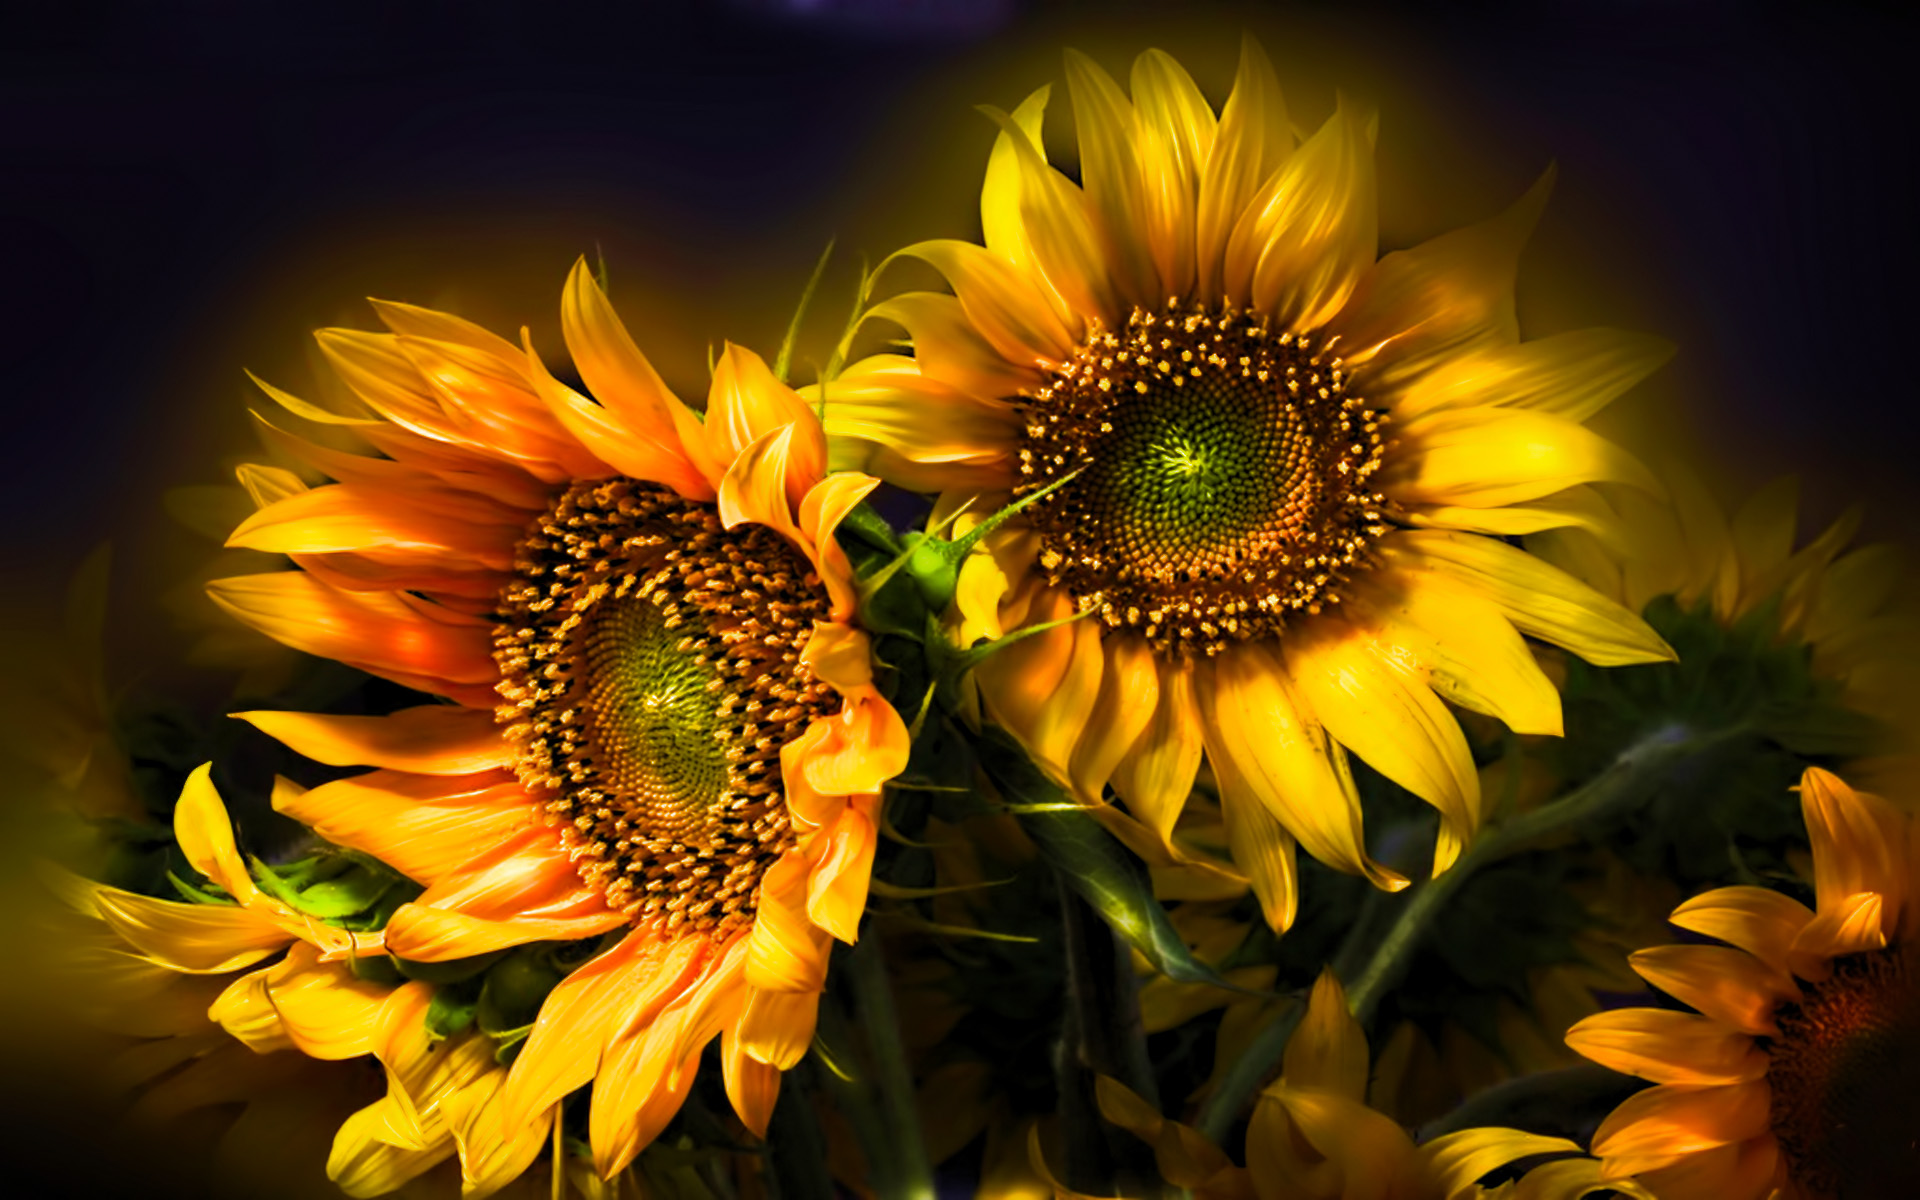 Nature flowers still life bouquets sunflowers seed petals ...